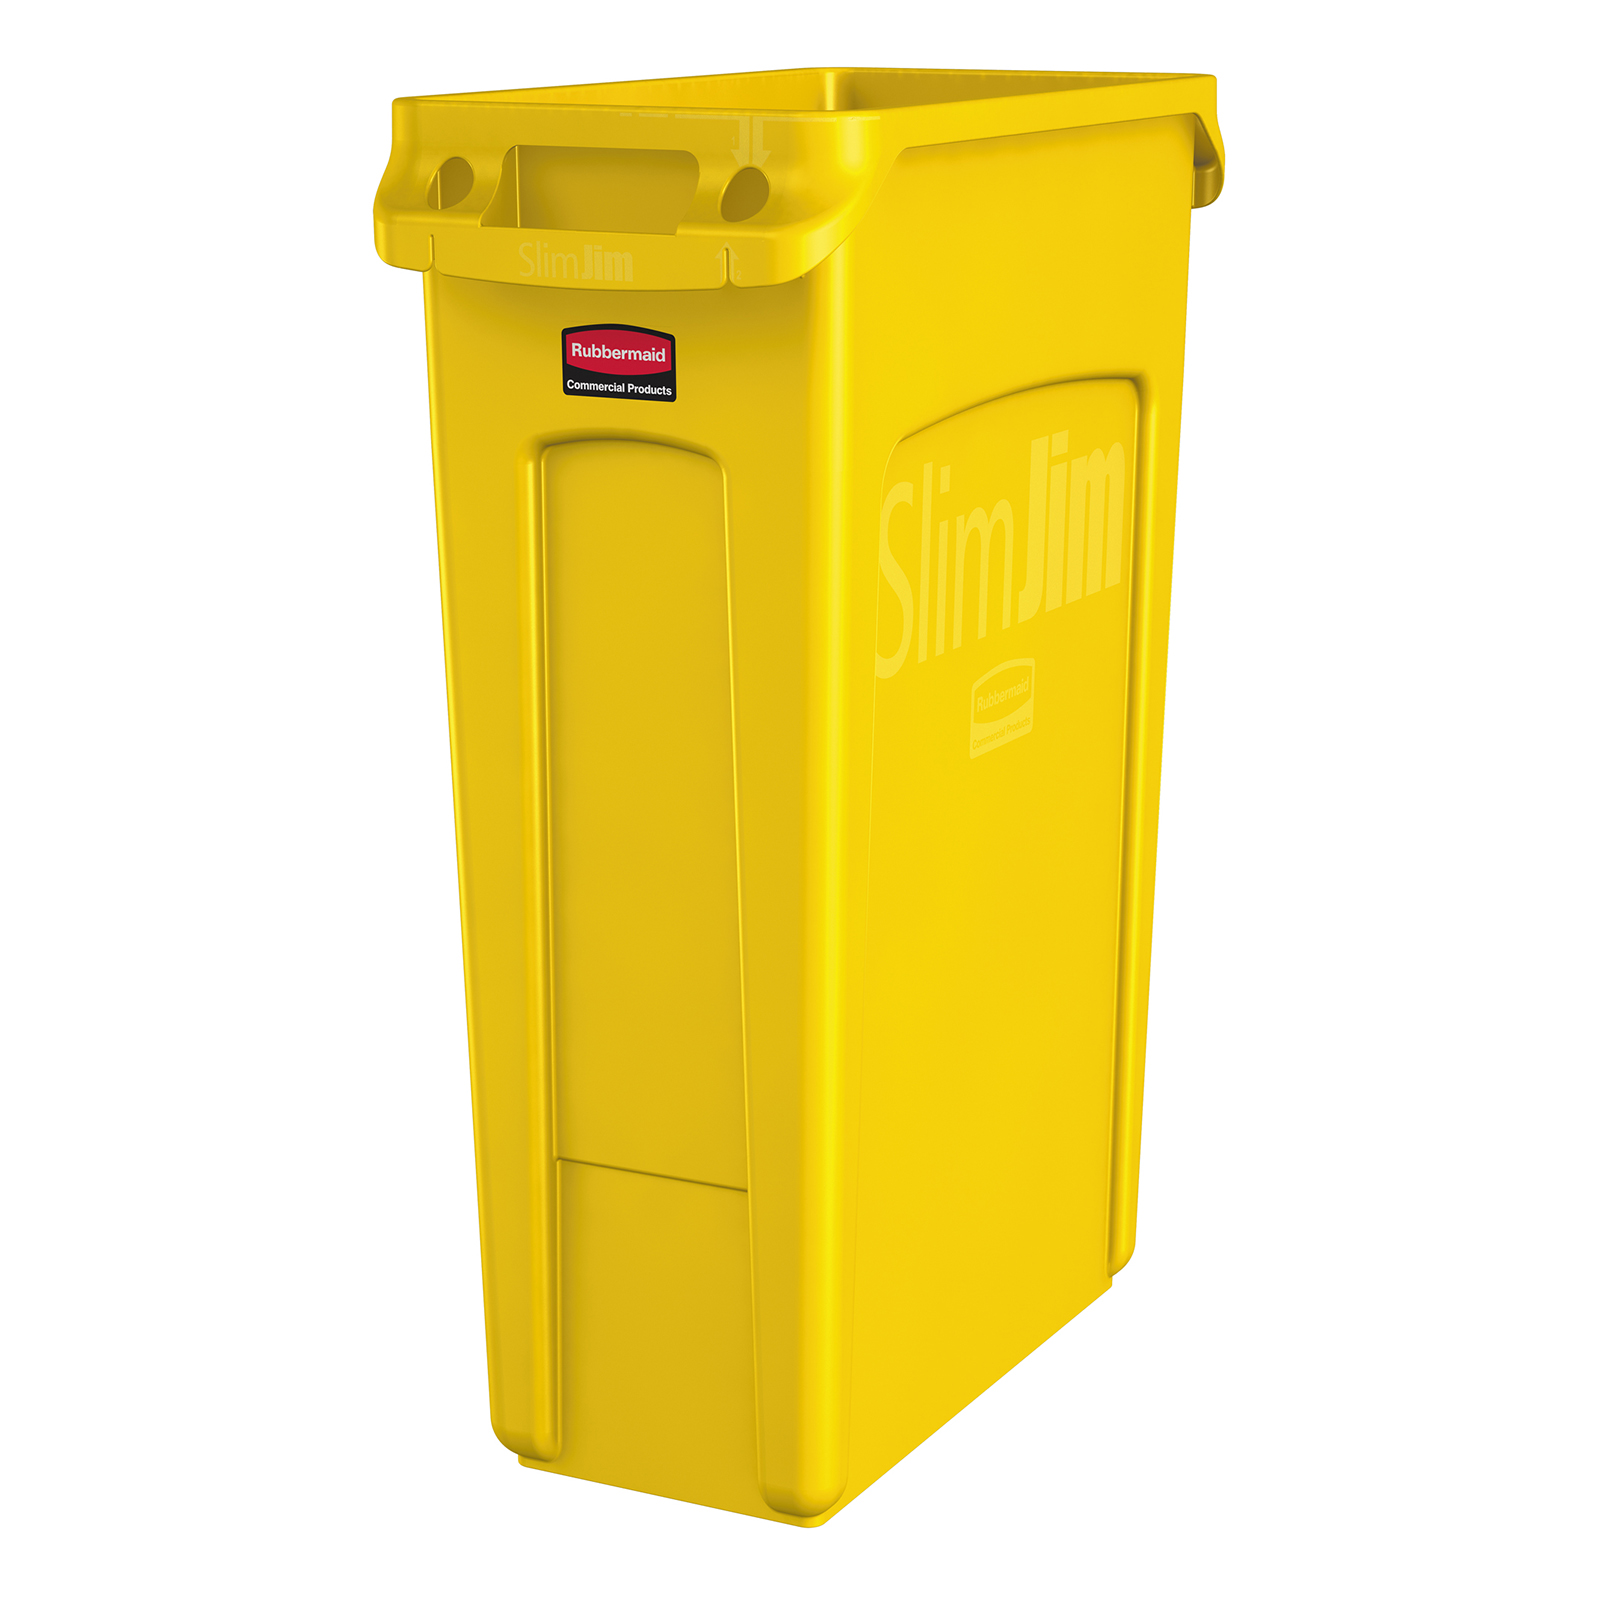 Rubbermaid Commercial Products 1956188 trash receptacle, indoor